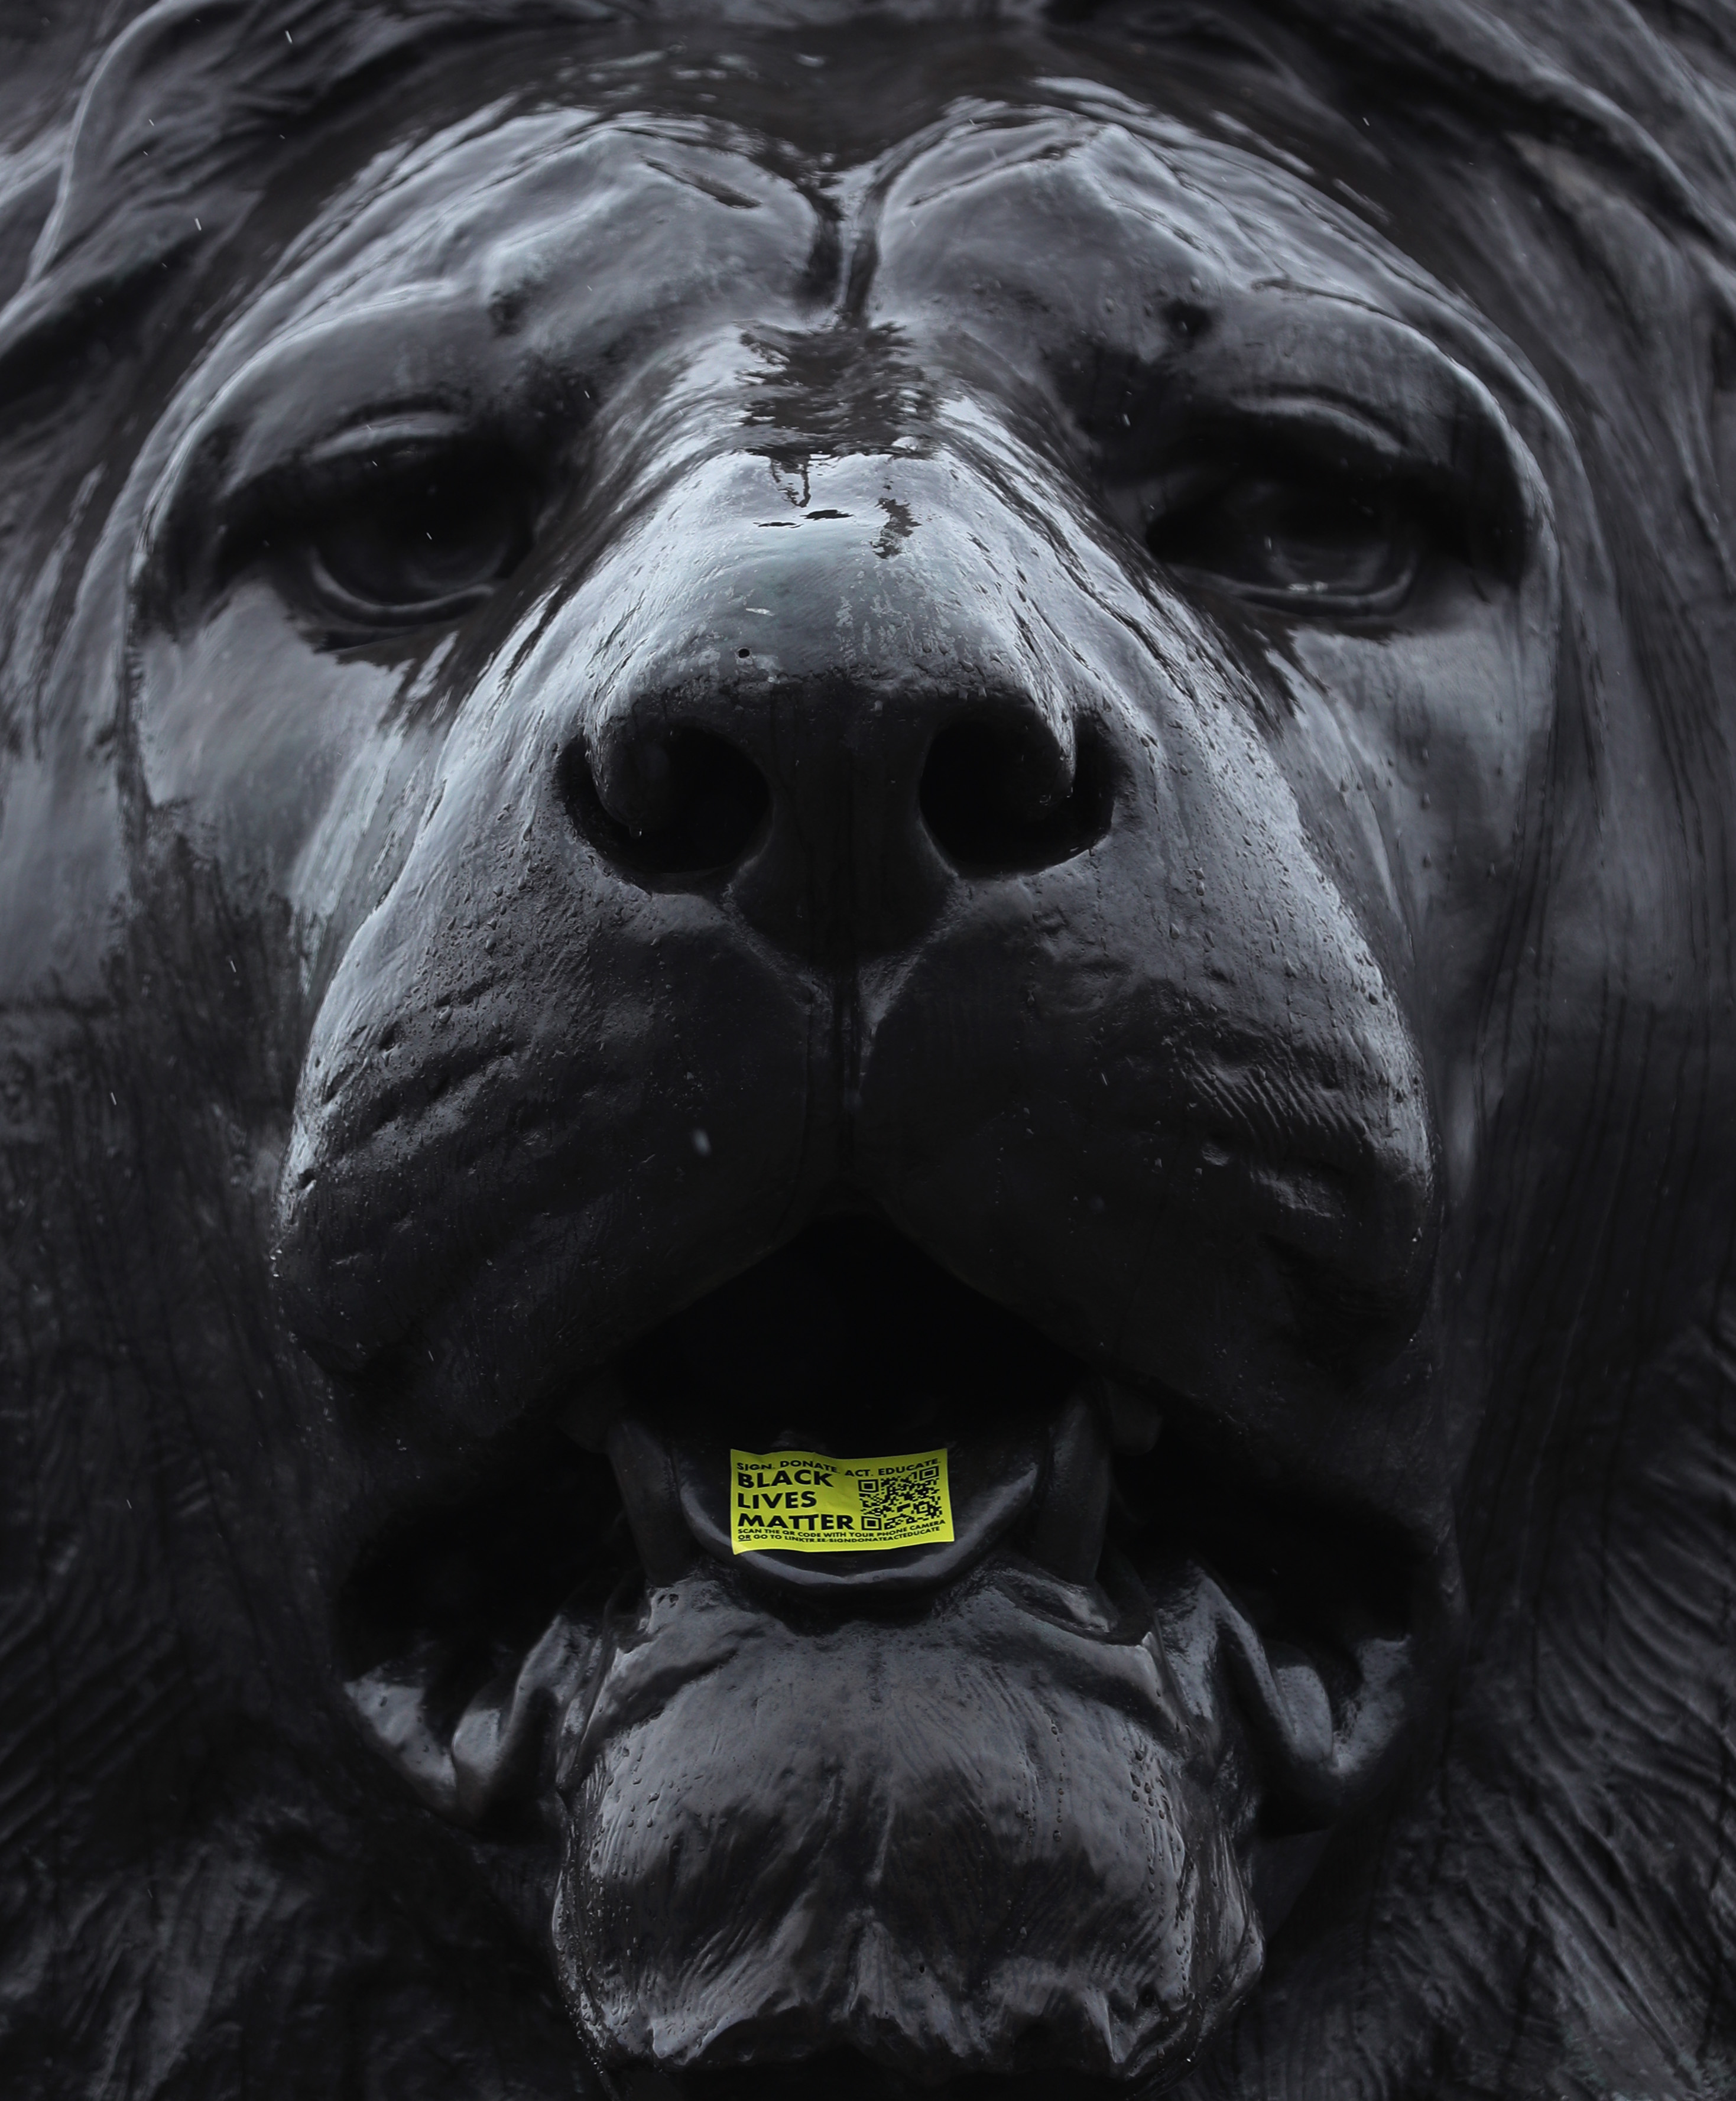 A sticker placed on the tongue of one of the lion sculptures in Trafalgar Square, London, following a raft of Black Lives Matter protests that took place across the UK over the weekend. The protests were sparked by the death of George Floyd, who was killed on May 25 while in police custody in the US city of Minneapolis.